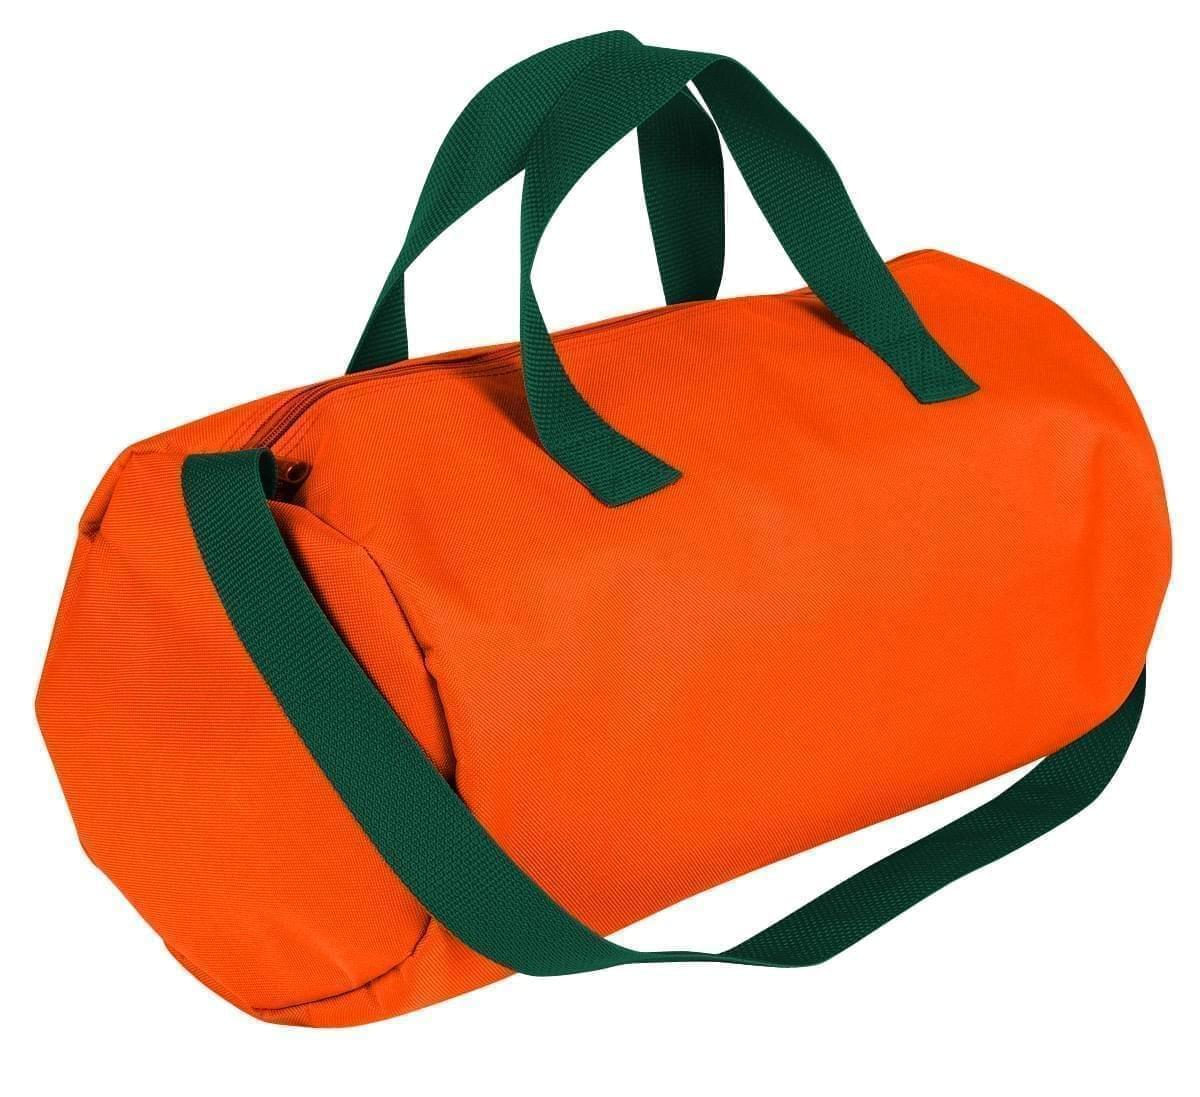 USA Made Nylon Poly Gym Roll Bags, Orange-Hunter Green, ROCX31AAXV